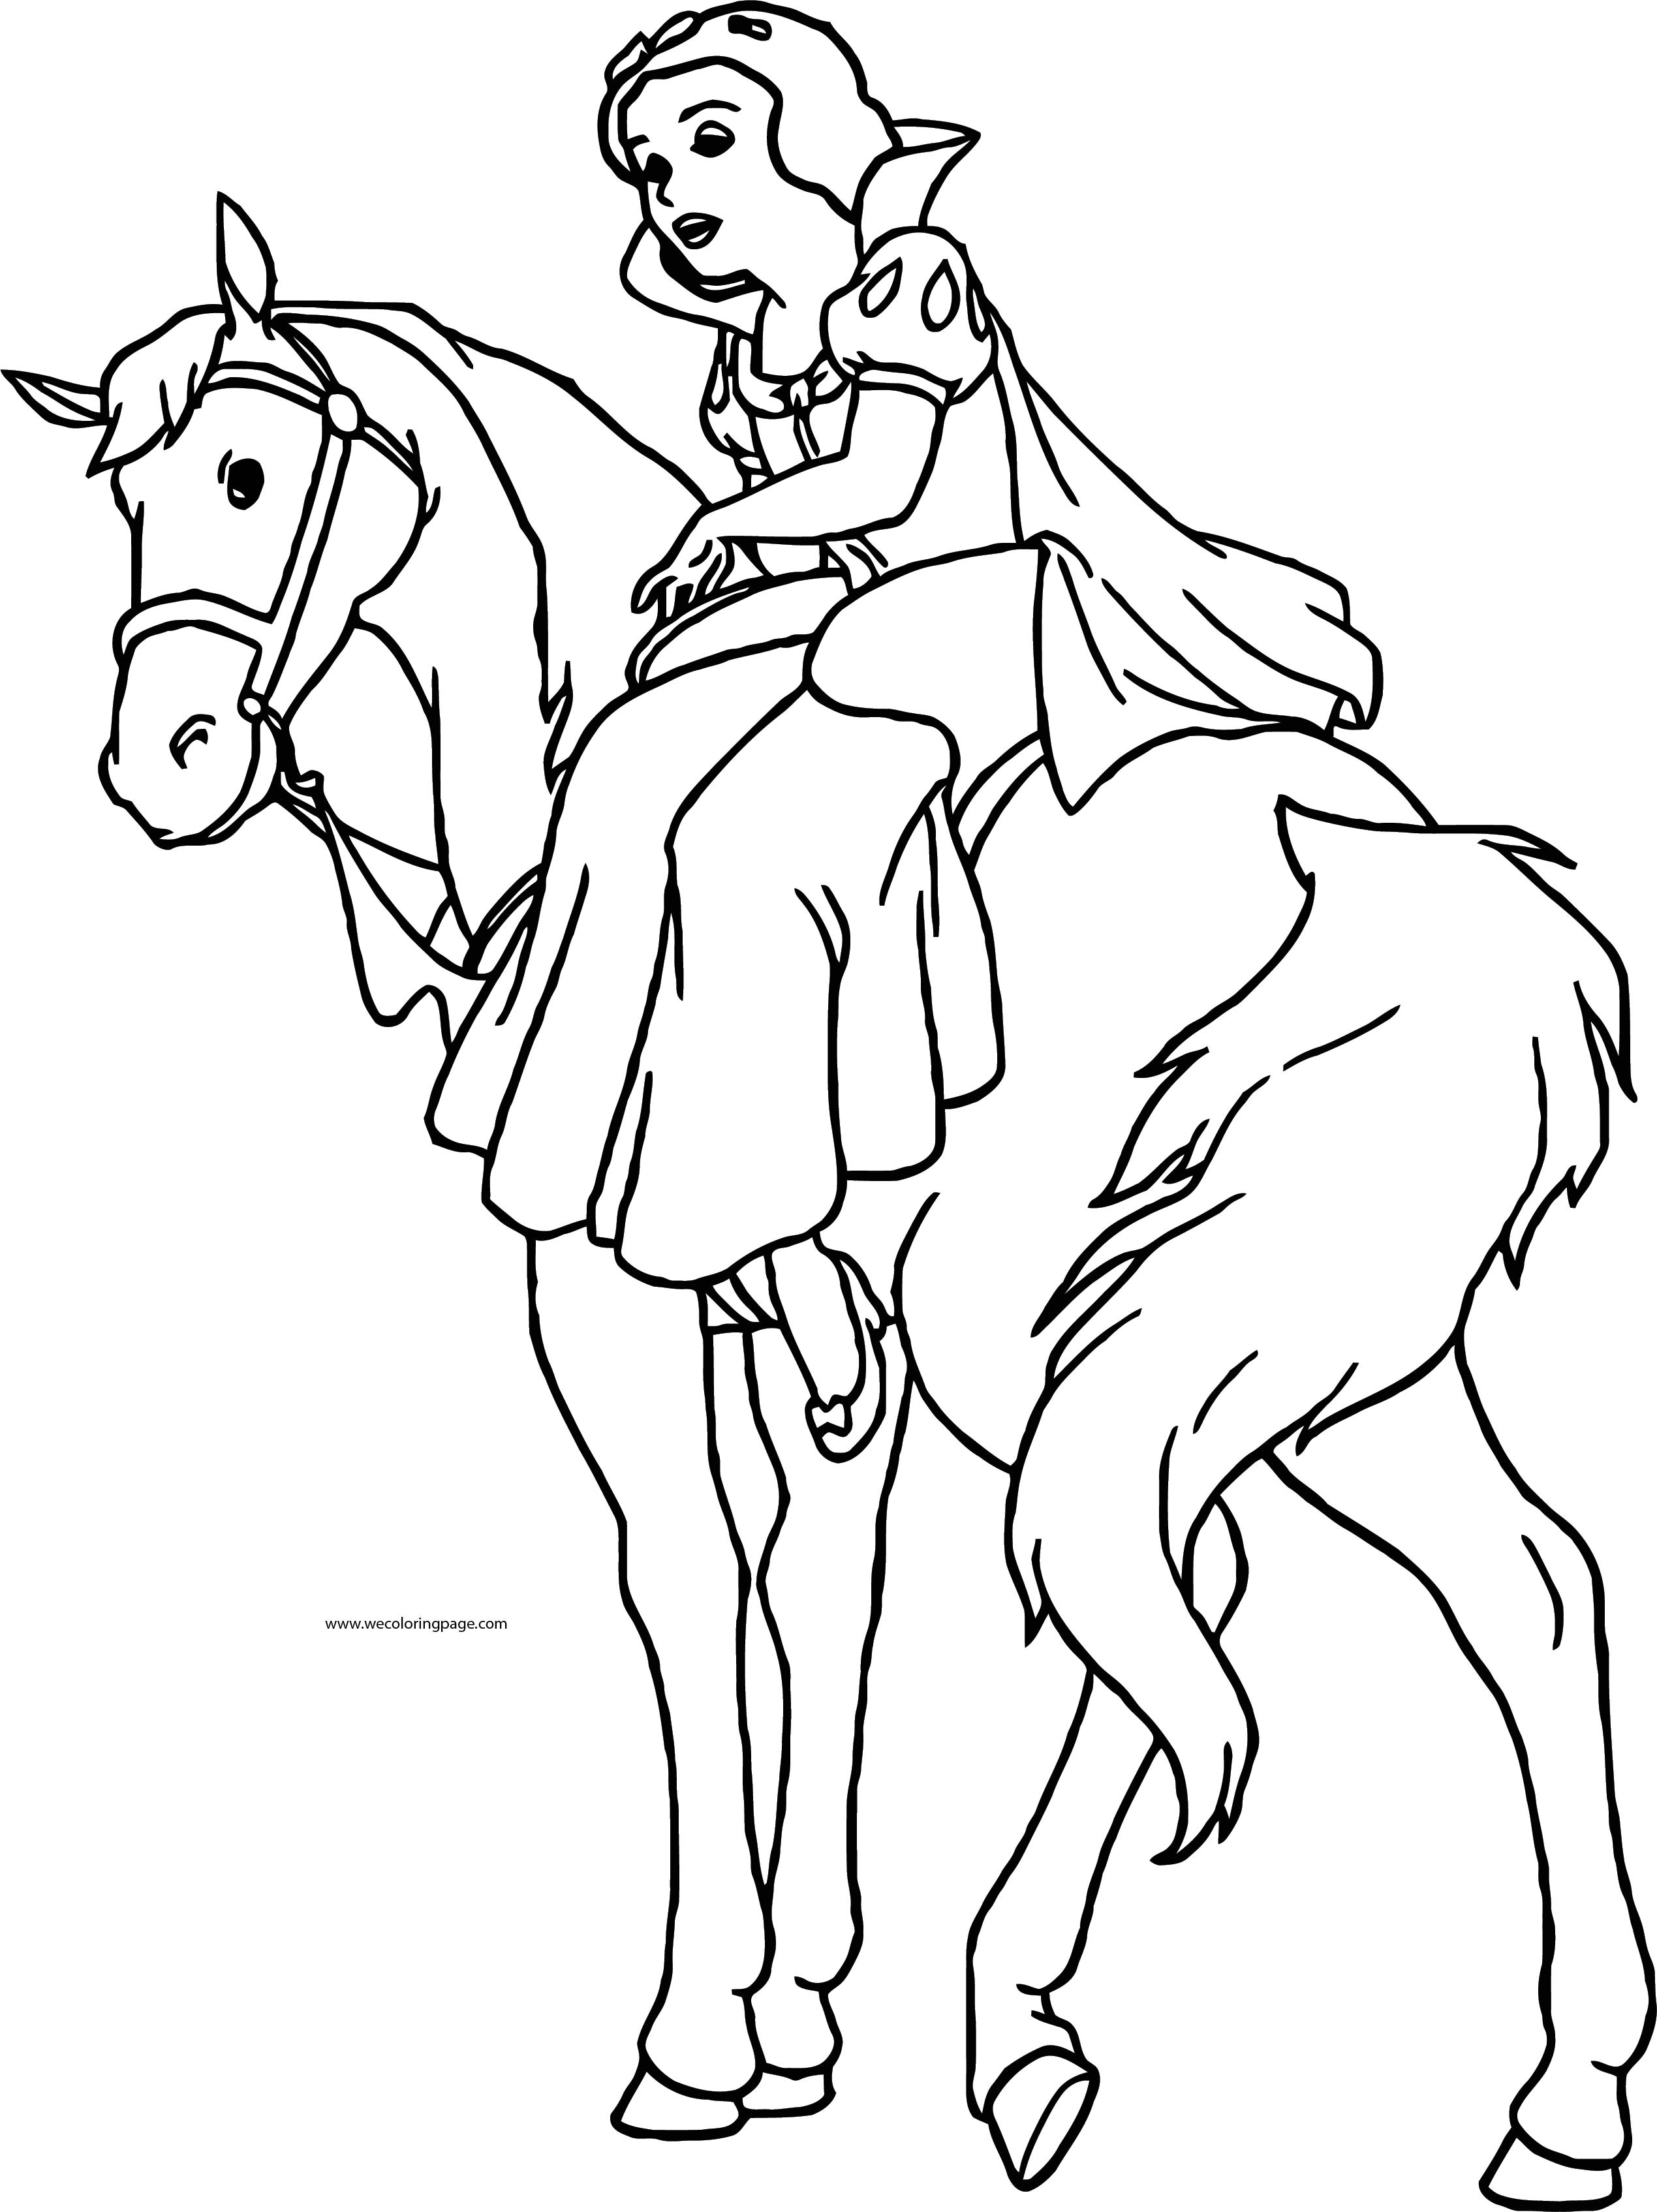 Snow White Coloring Page 061